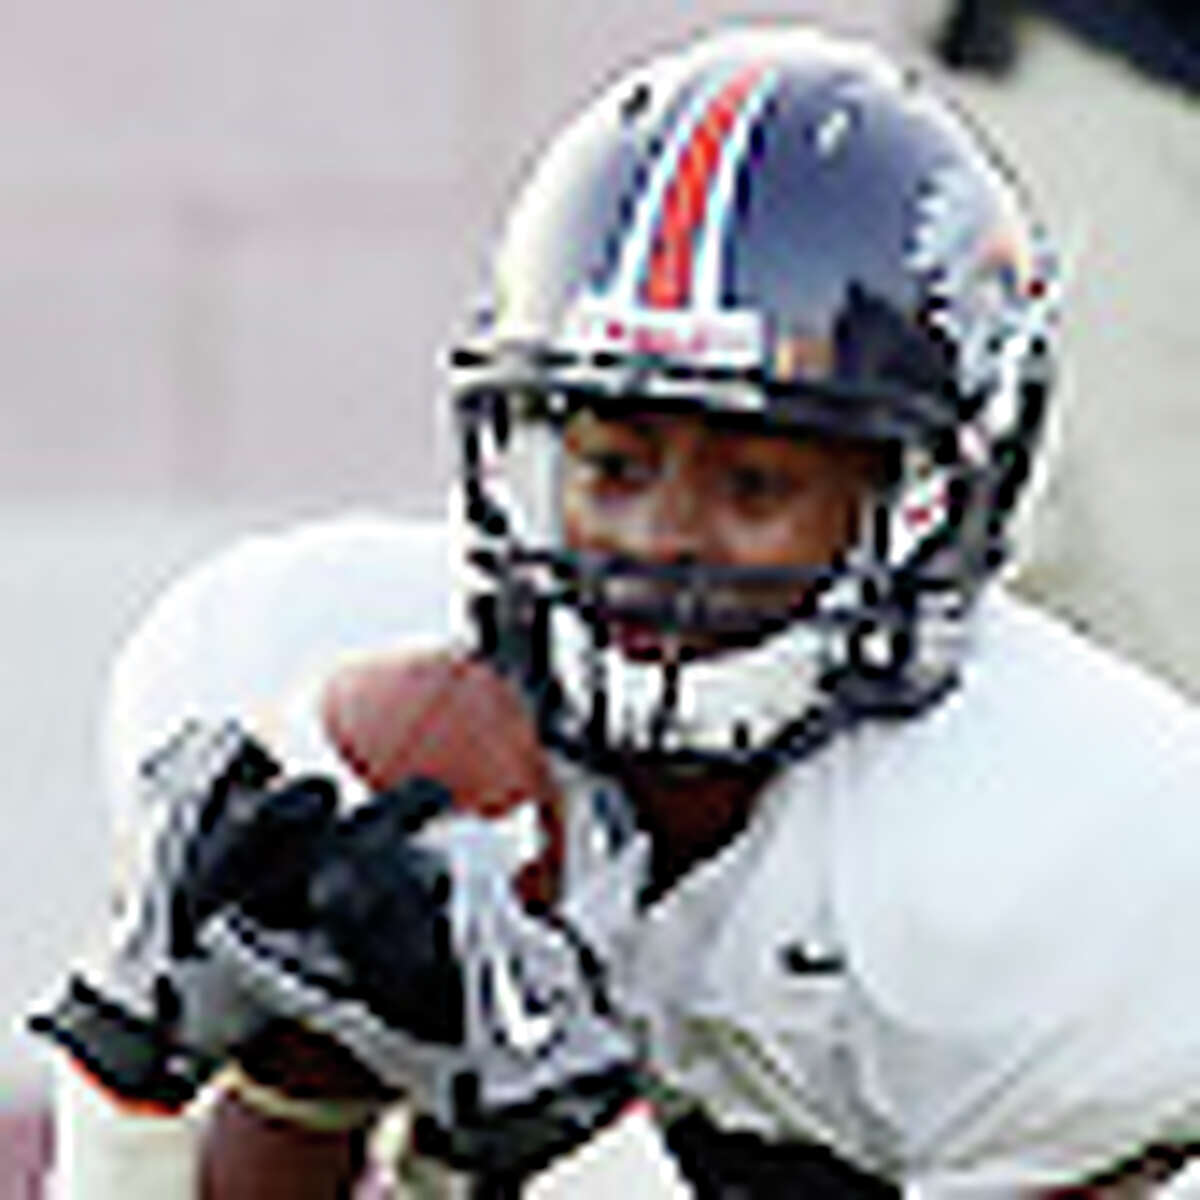 Freshman wide receiver Earon Holmes (left) makes a diving catch during the UTSA football team's first scrimmage at Farris Stadium on Wednesday, Sept. 15, 2010. Holmes also scored a touchdown for the offensive unit. Kin Man Hui/kmhui@express-news.net